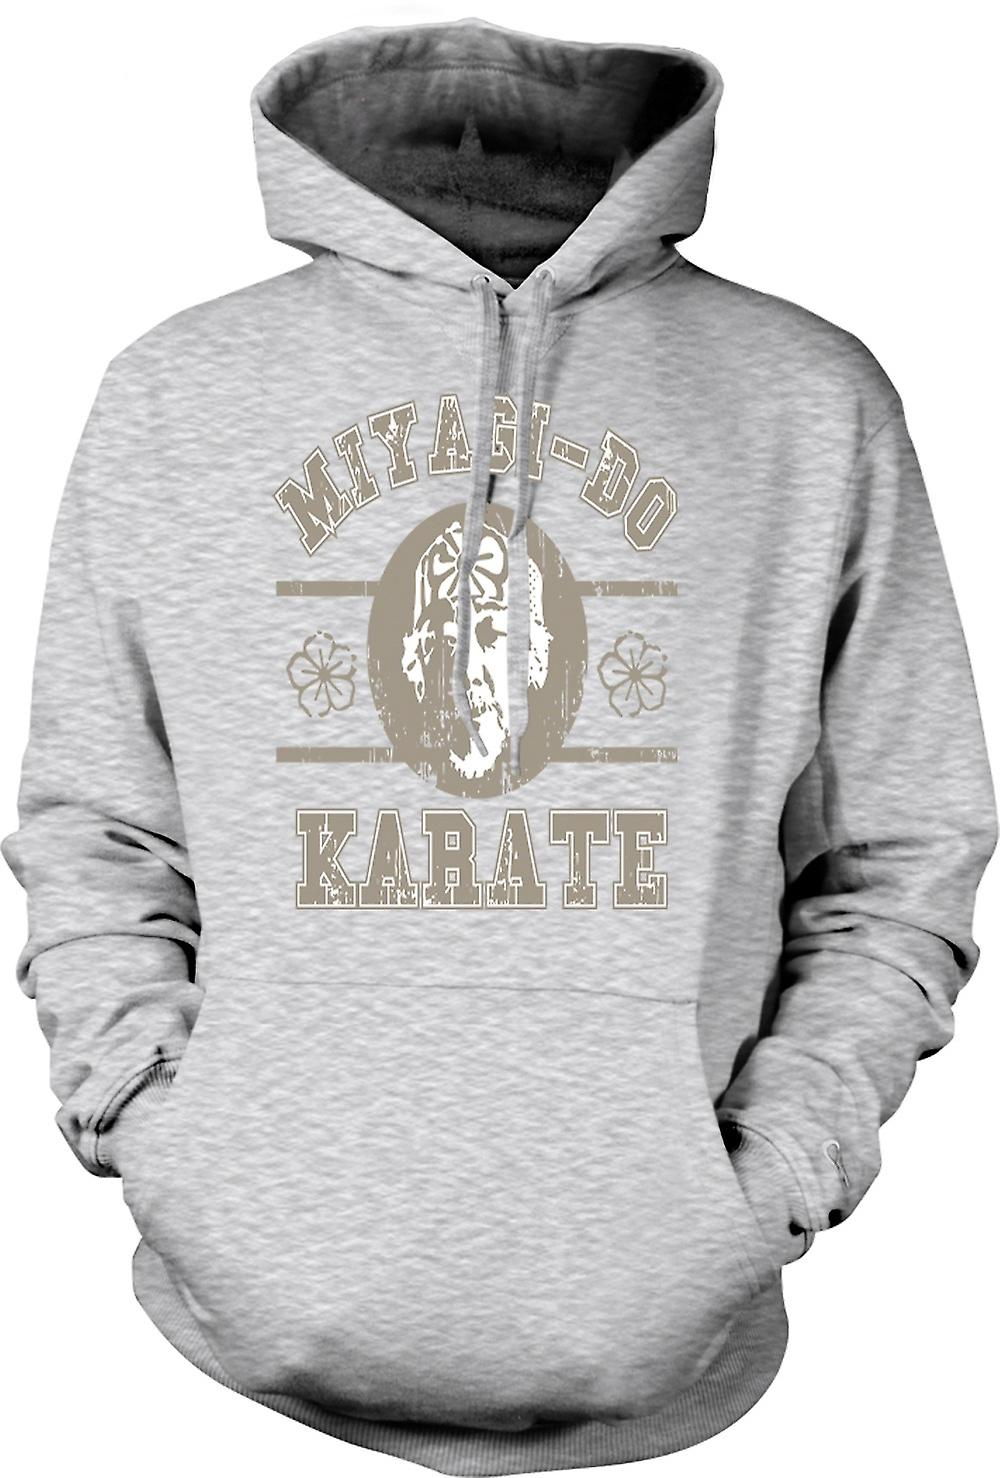 Mens Hoodie - Mr Miyagi Do - Karate Kid - Movie